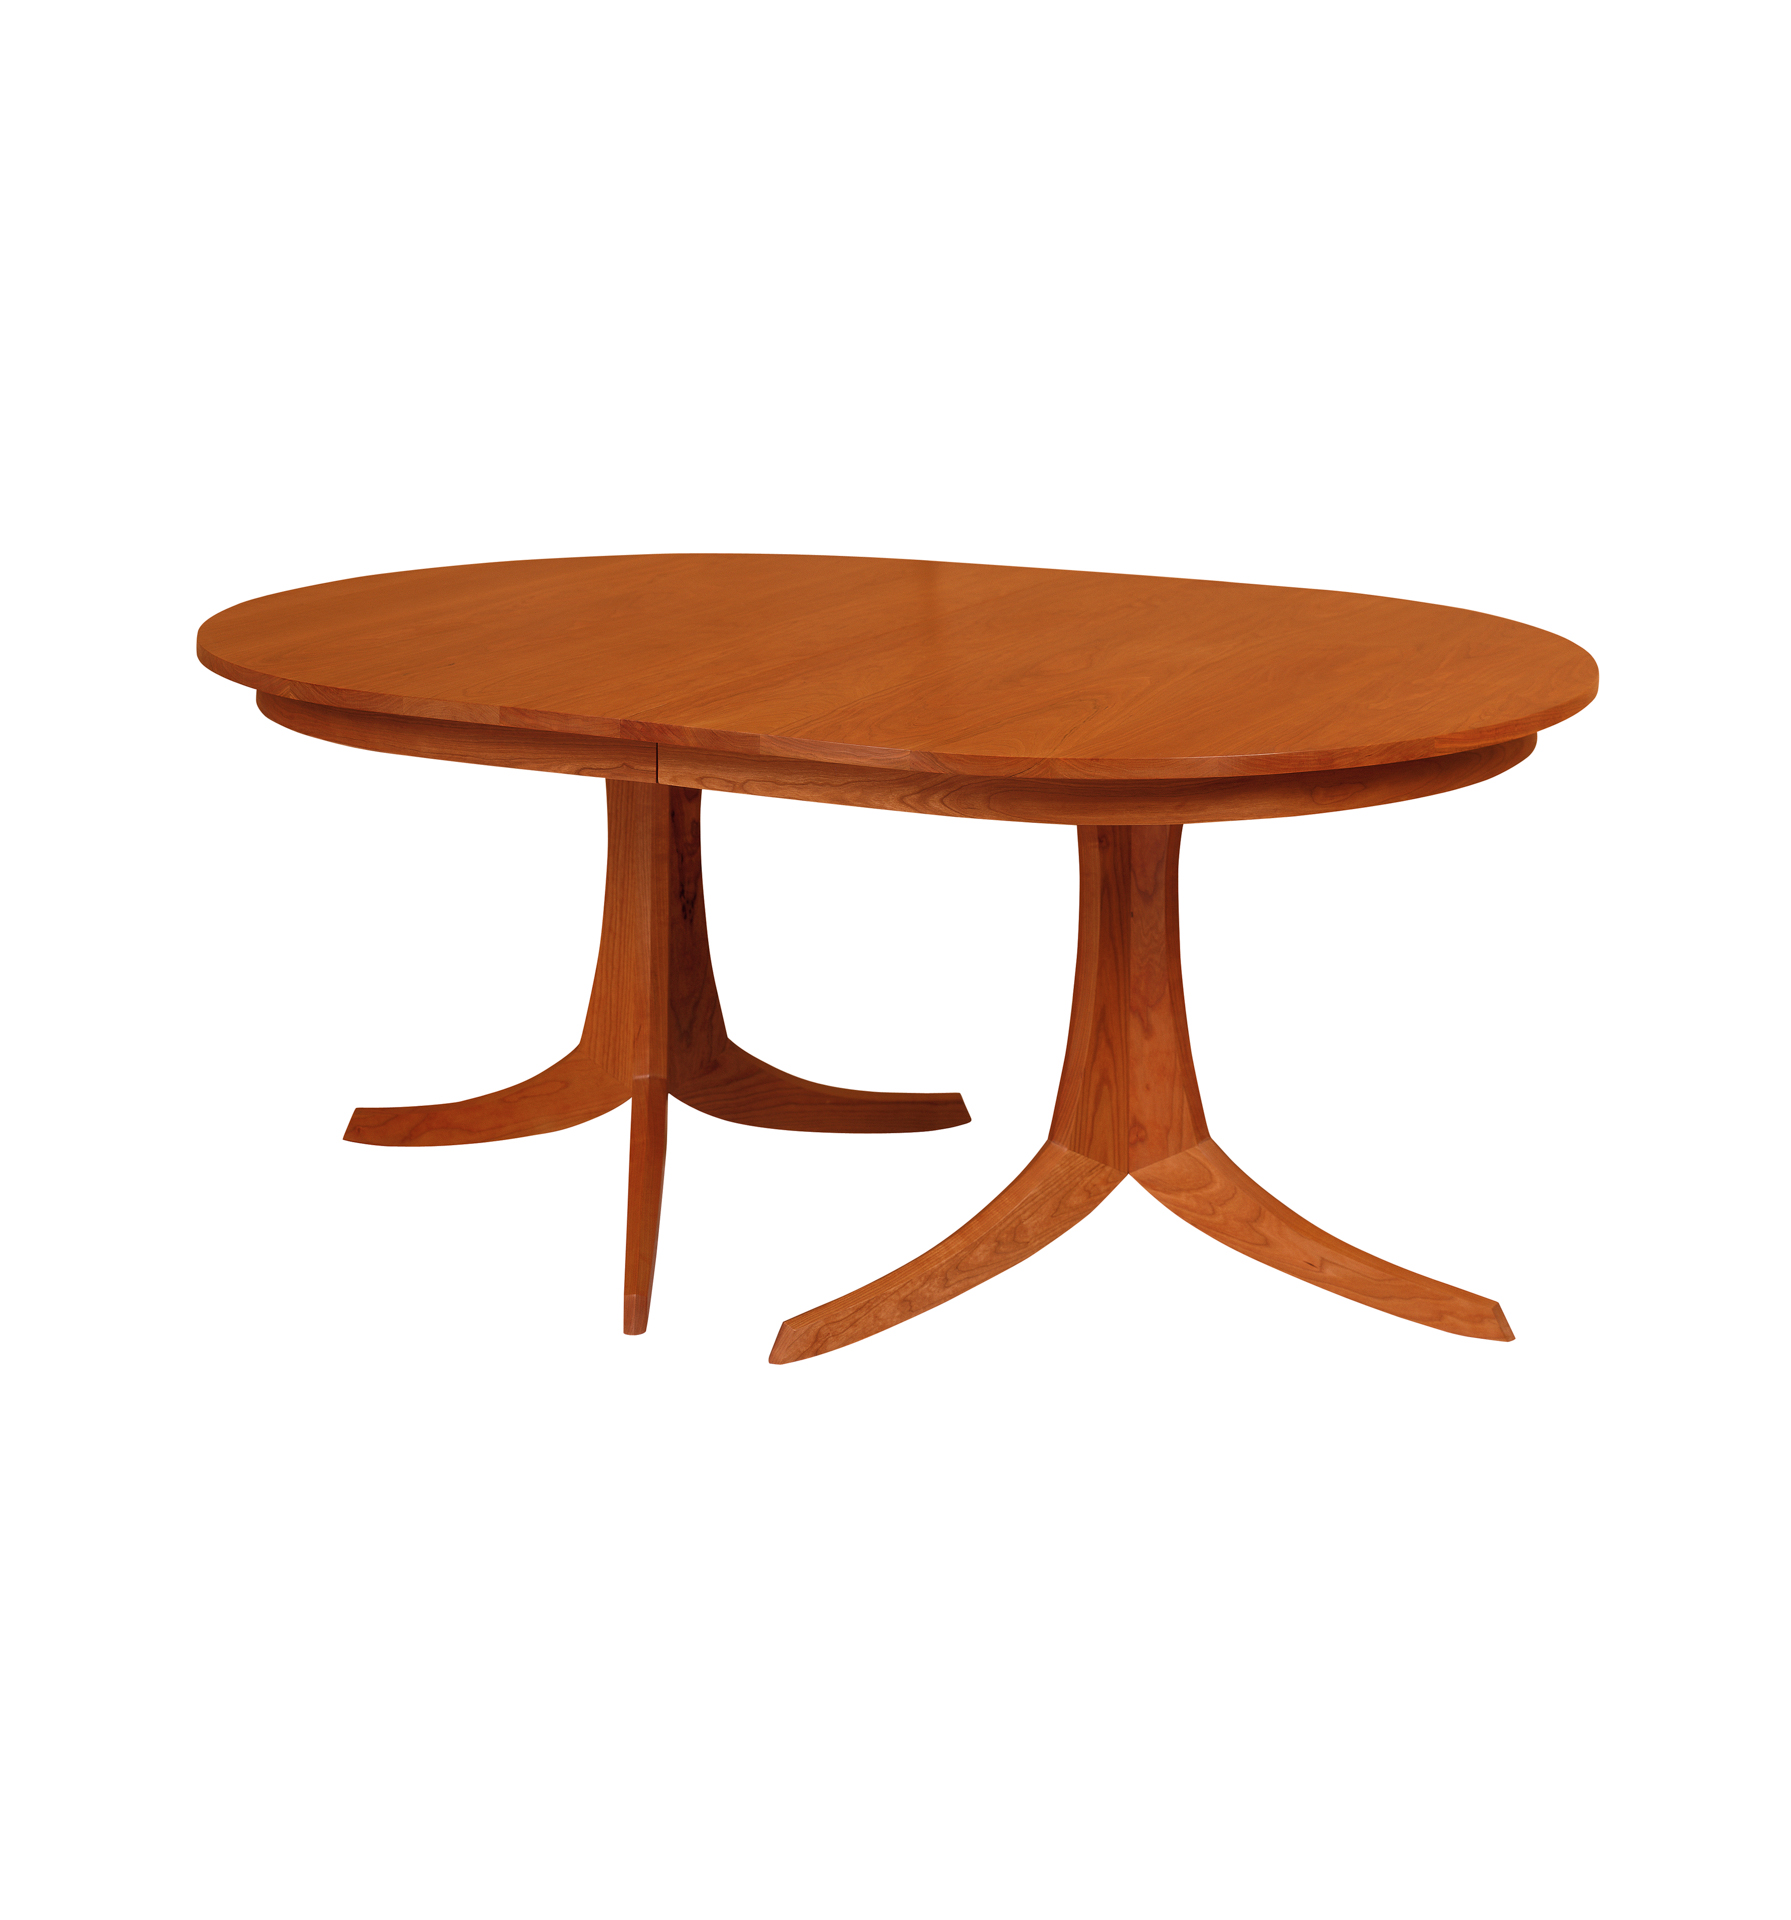 georgian leaves elegant mahogany brilliant table an with best double ideas lovely of pedestal dining spectacular style tables